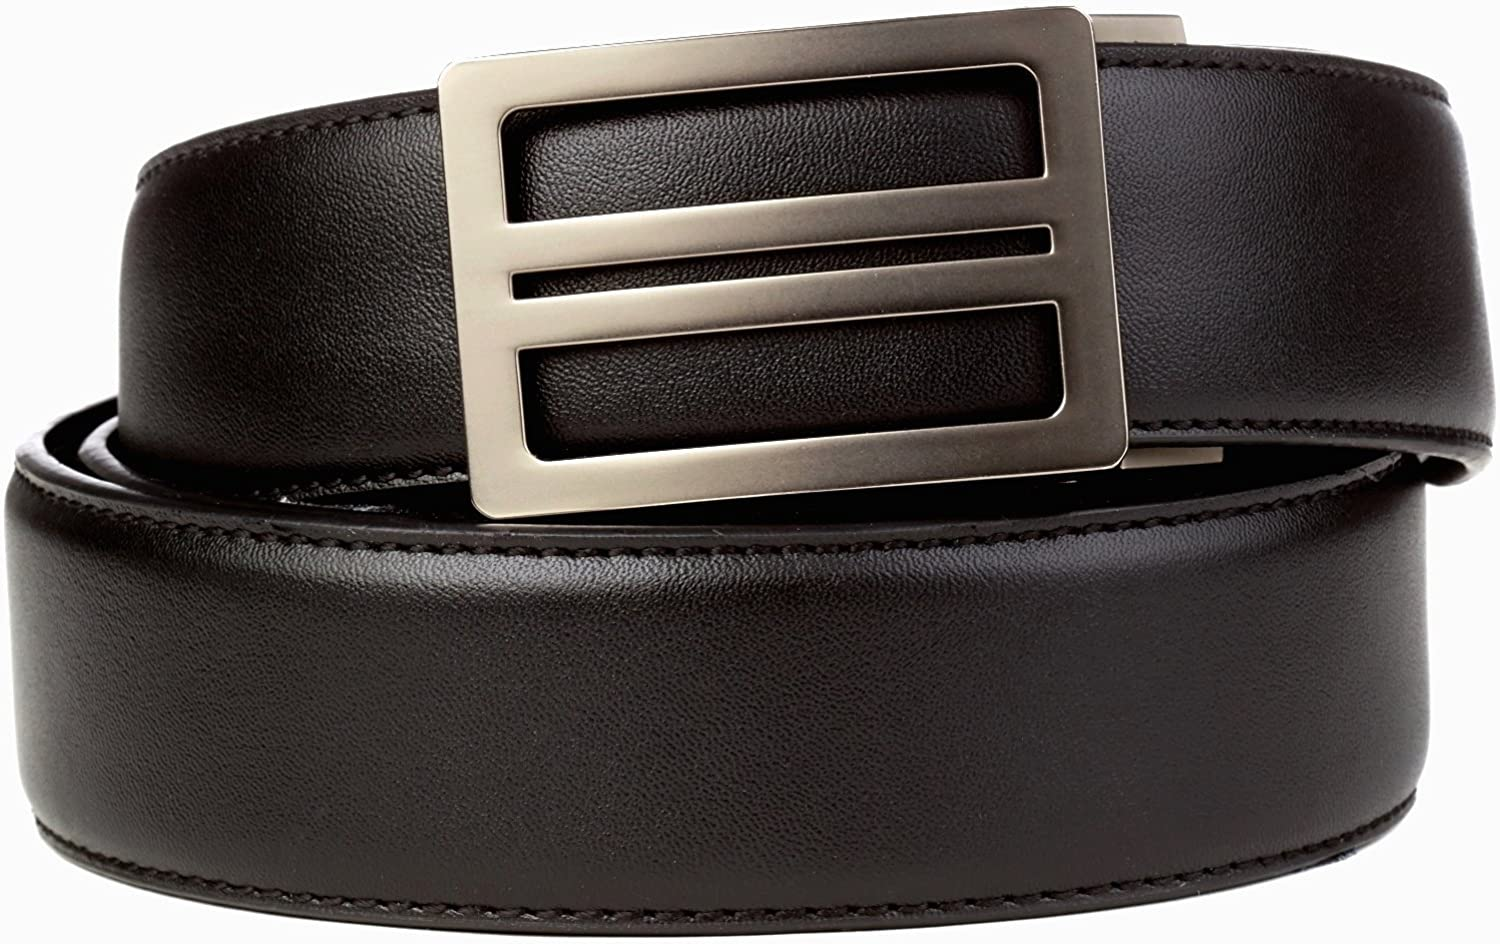 Amazon Com Trakline Kore Concealed Carry Gun Belt X1 Buckle Reinforced Belt Set Clothing I have 4 total now. trakline kore concealed carry gun belt